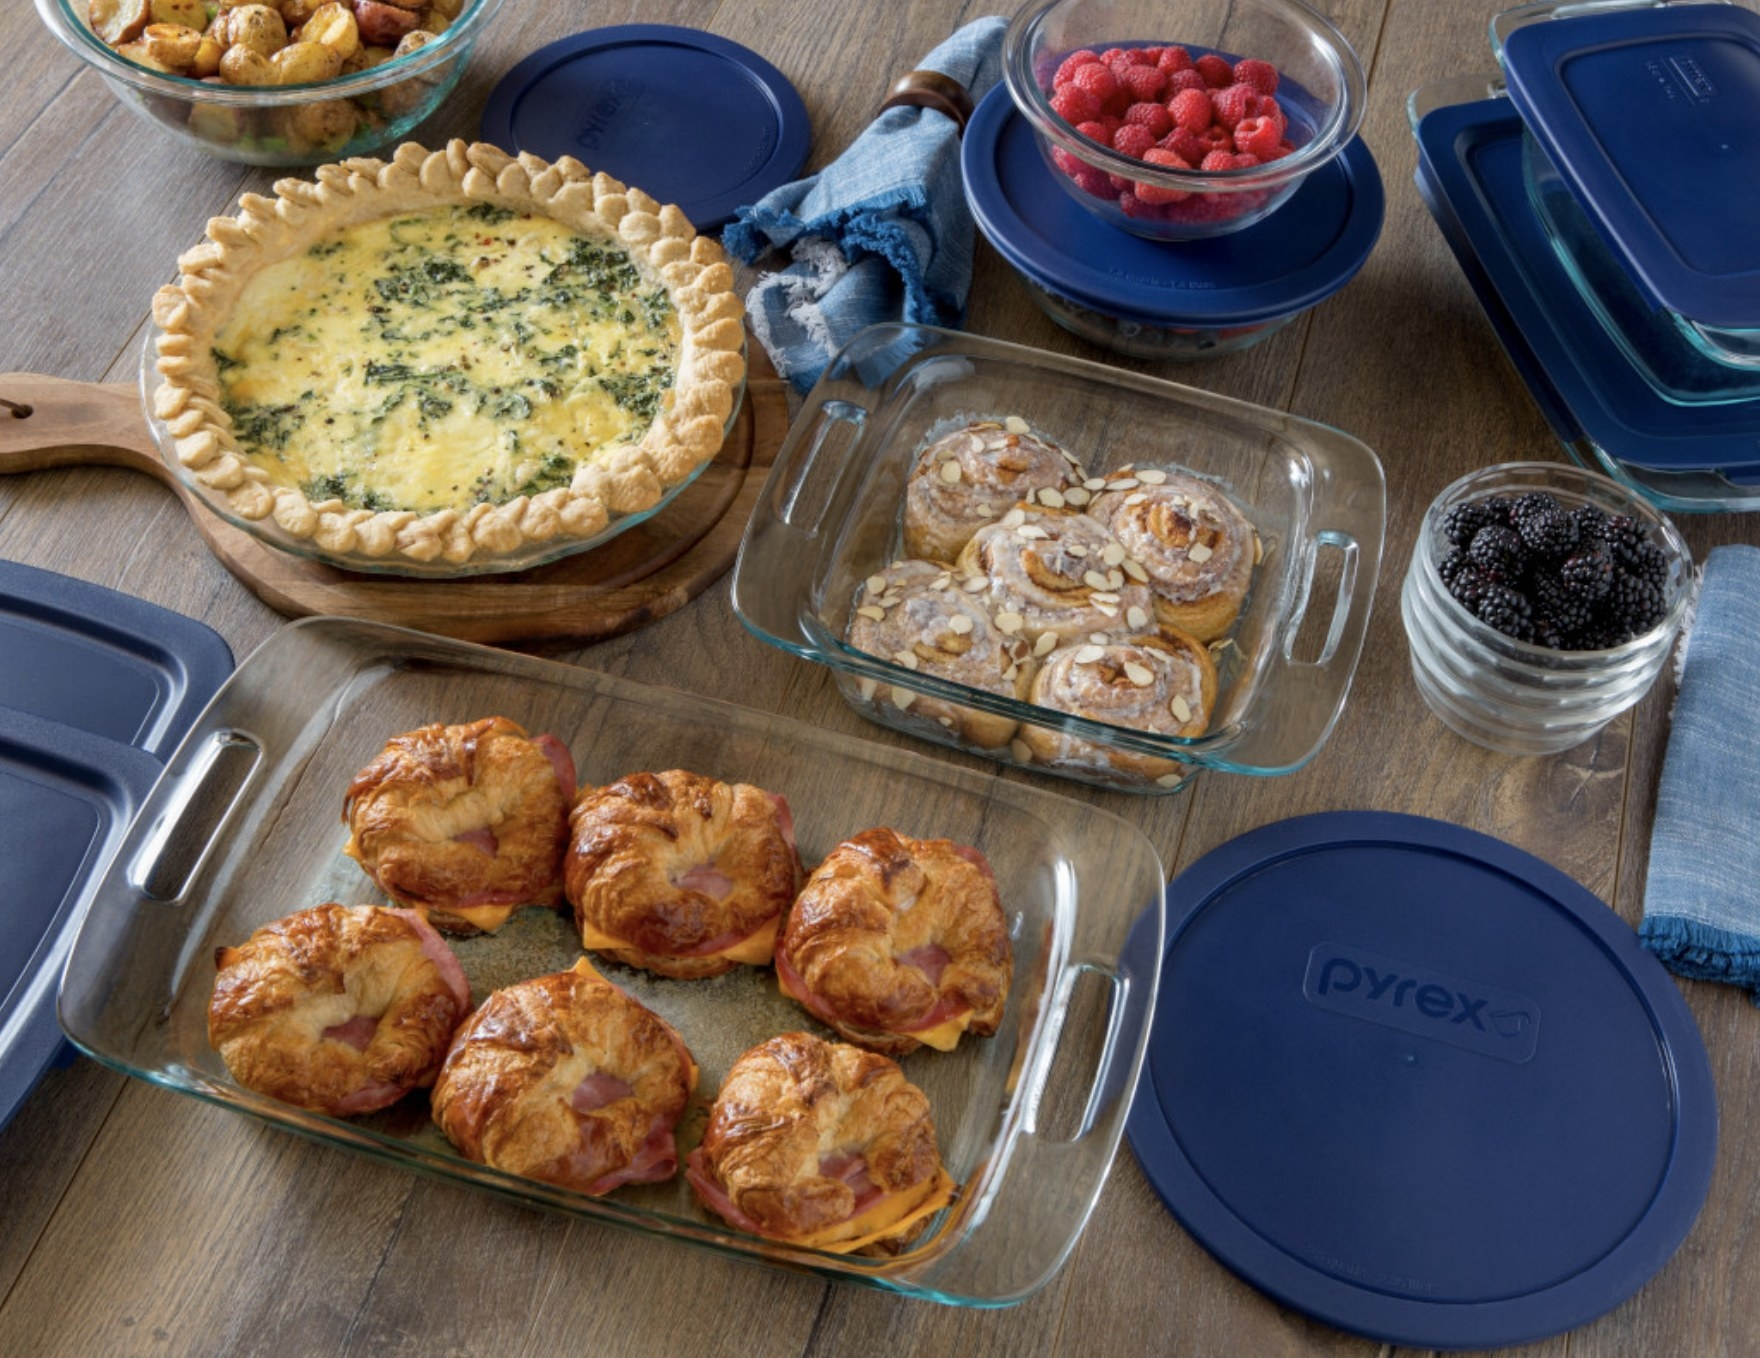 The glass bakeware set with blue lids